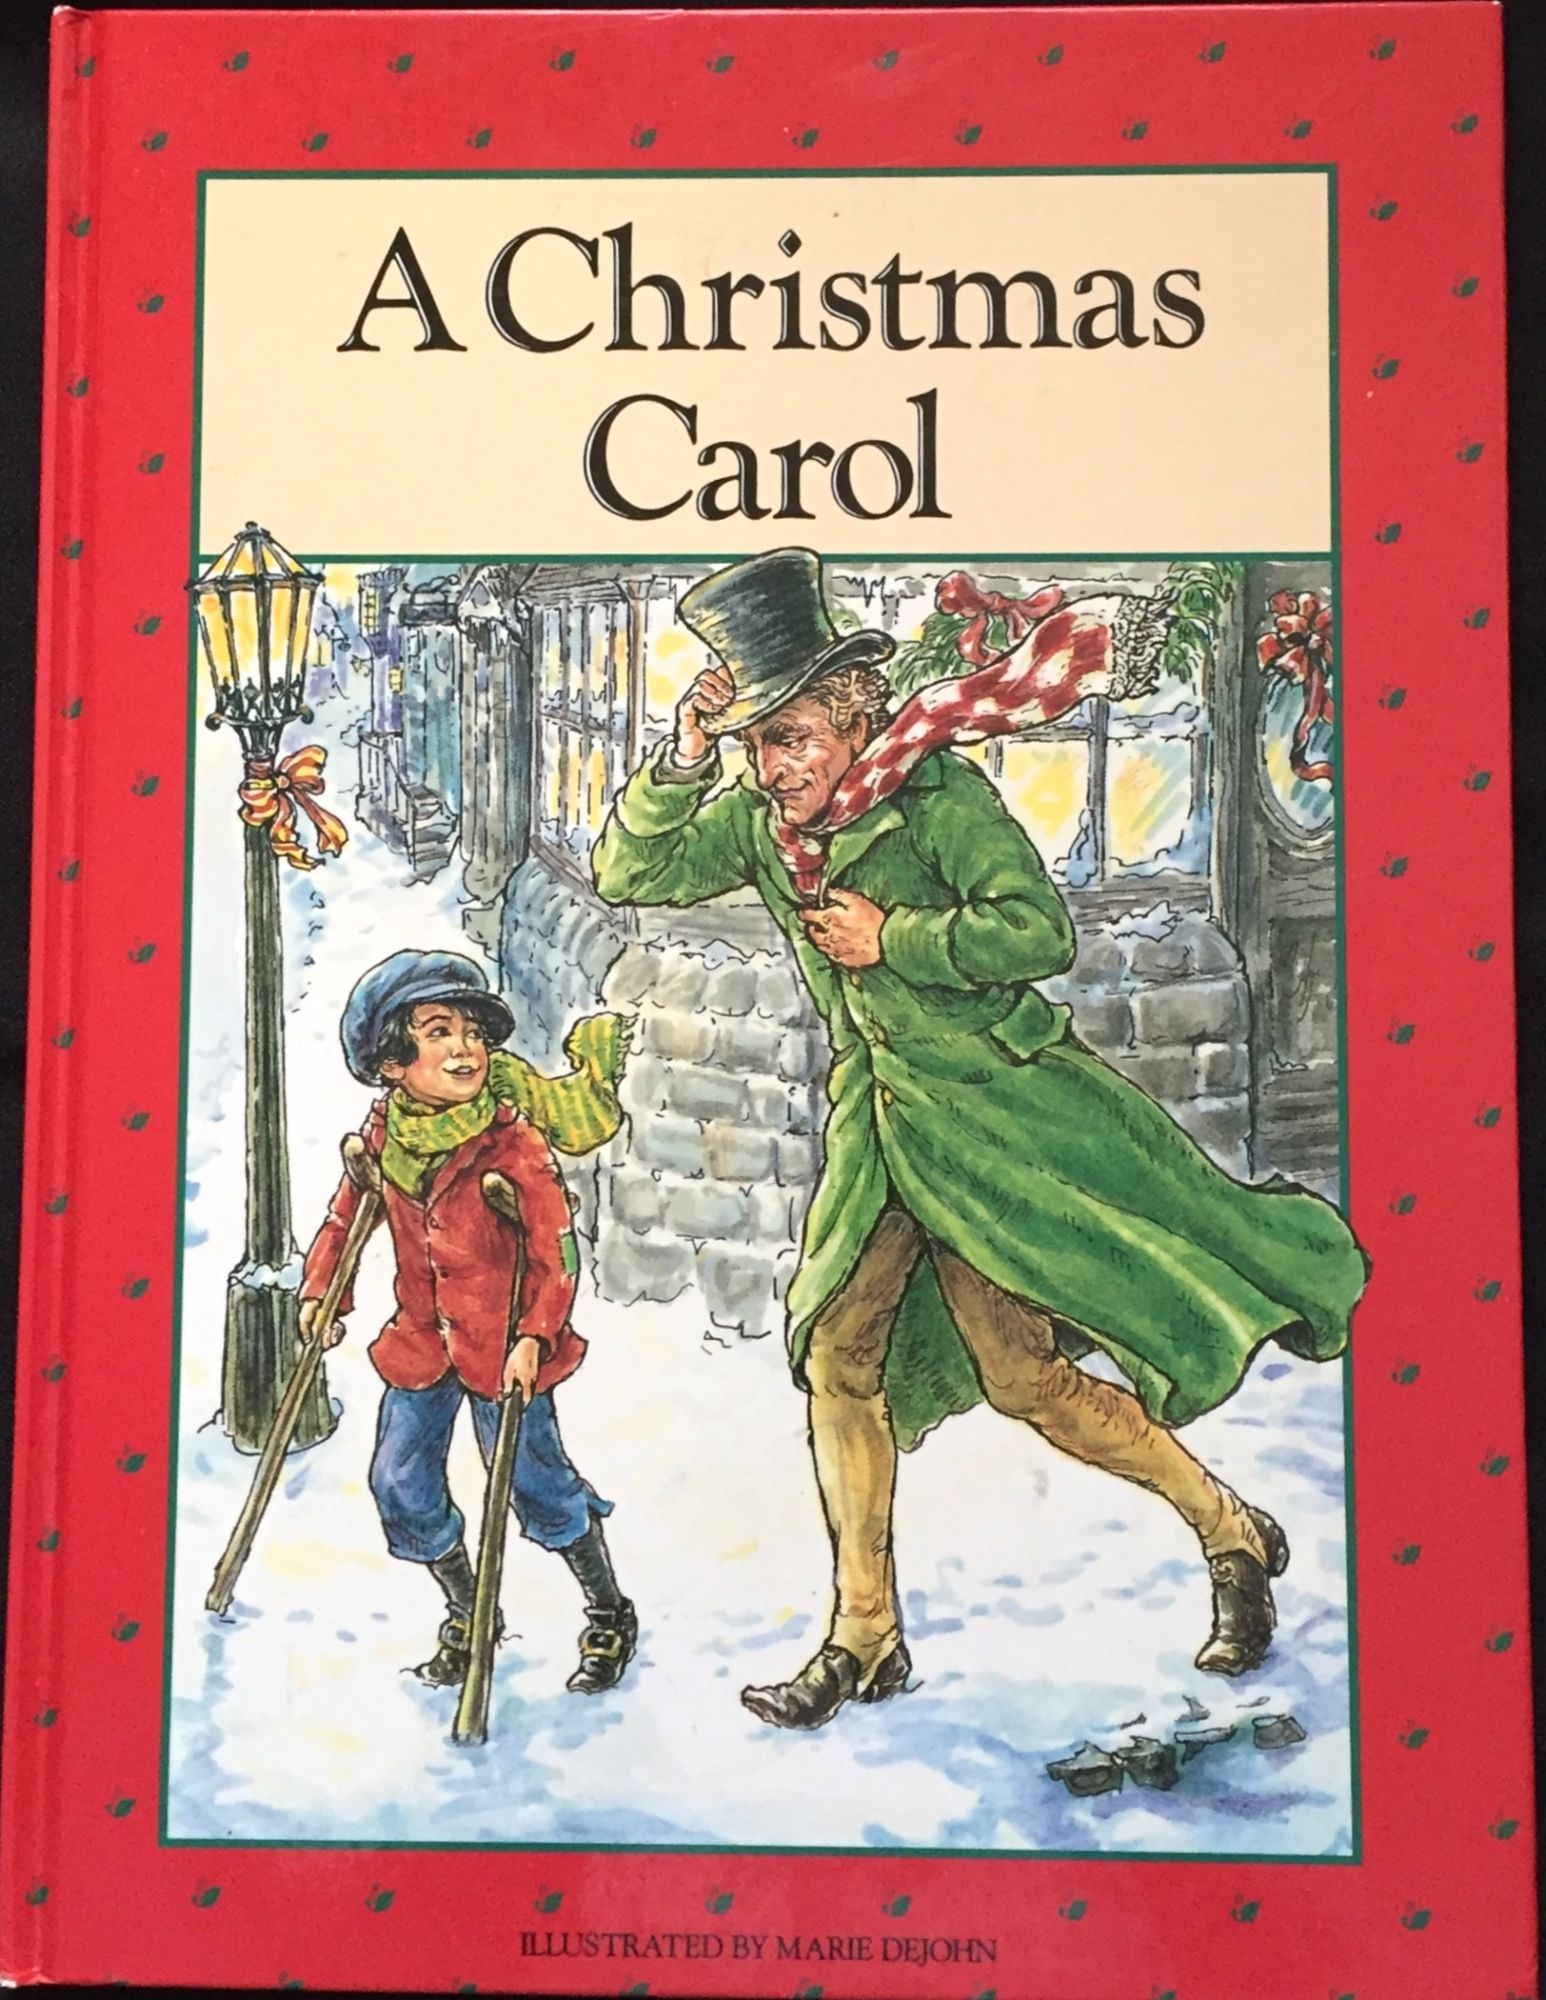 A Christmas Carol Book.A Christmas Carol Illustrated By Marie Dejohn By Charles Dickens On Borg Antiquarian